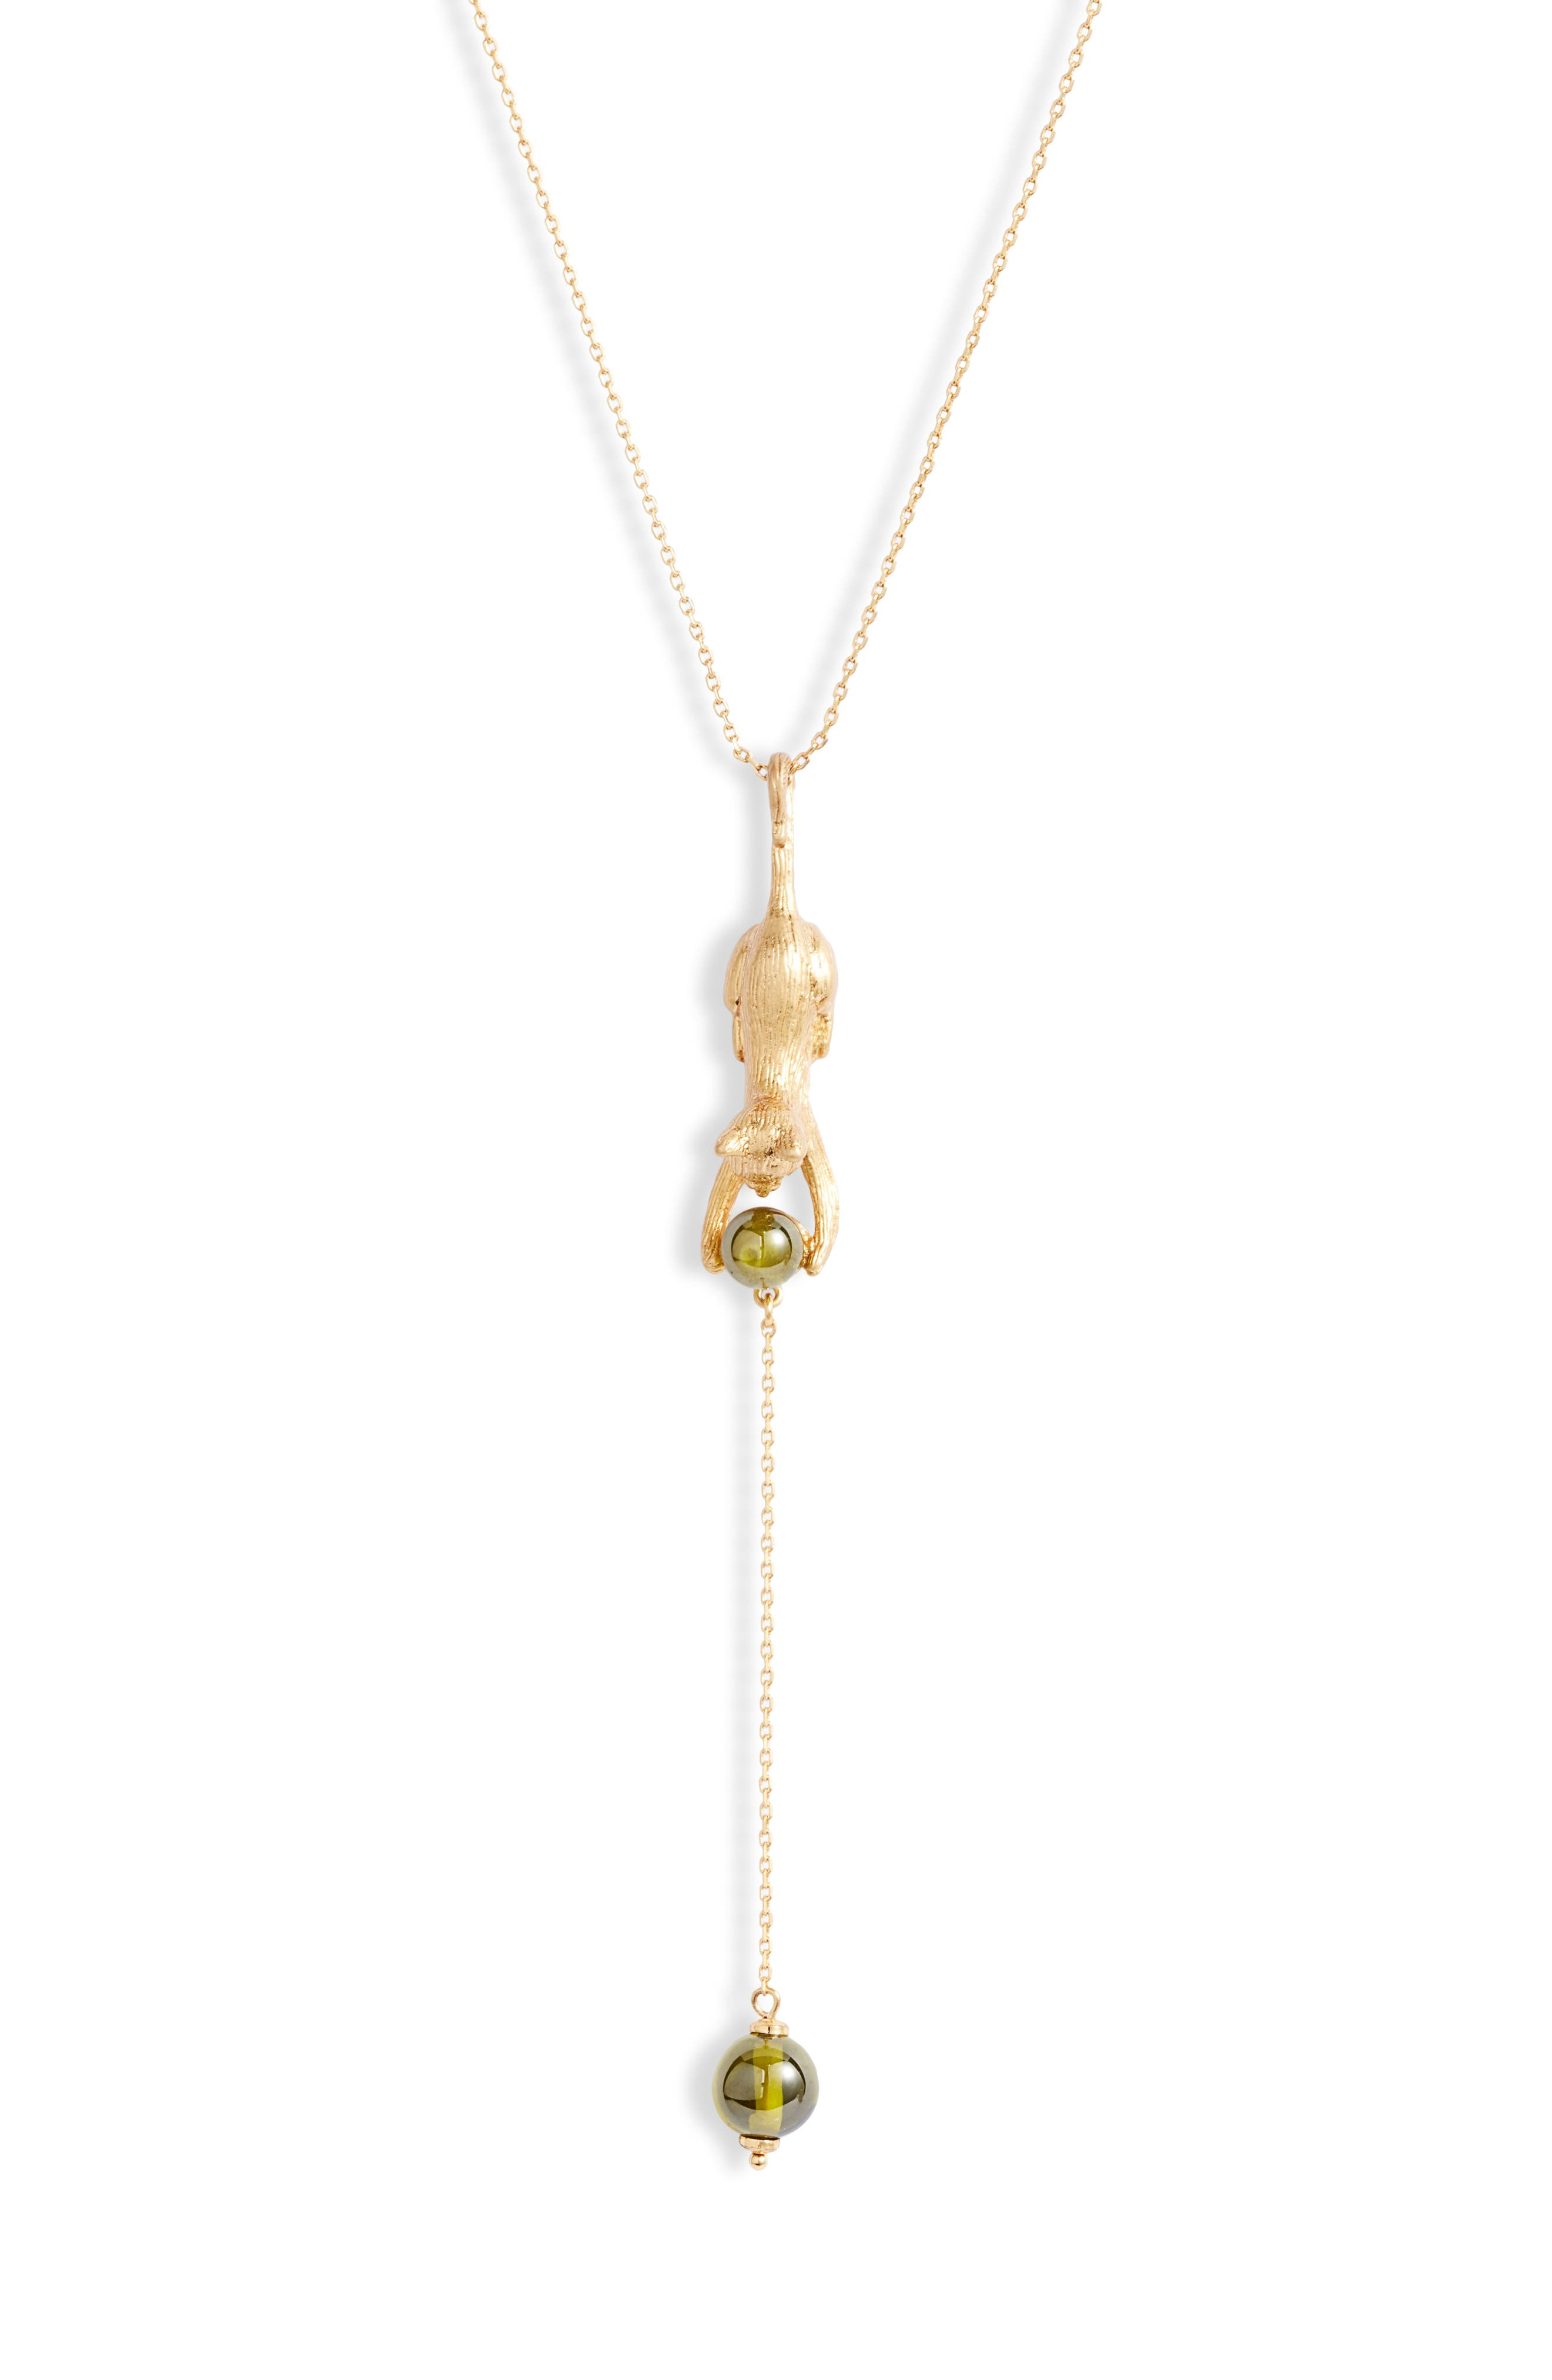 Kate Spade New York Jewelry house cat Y-necklace